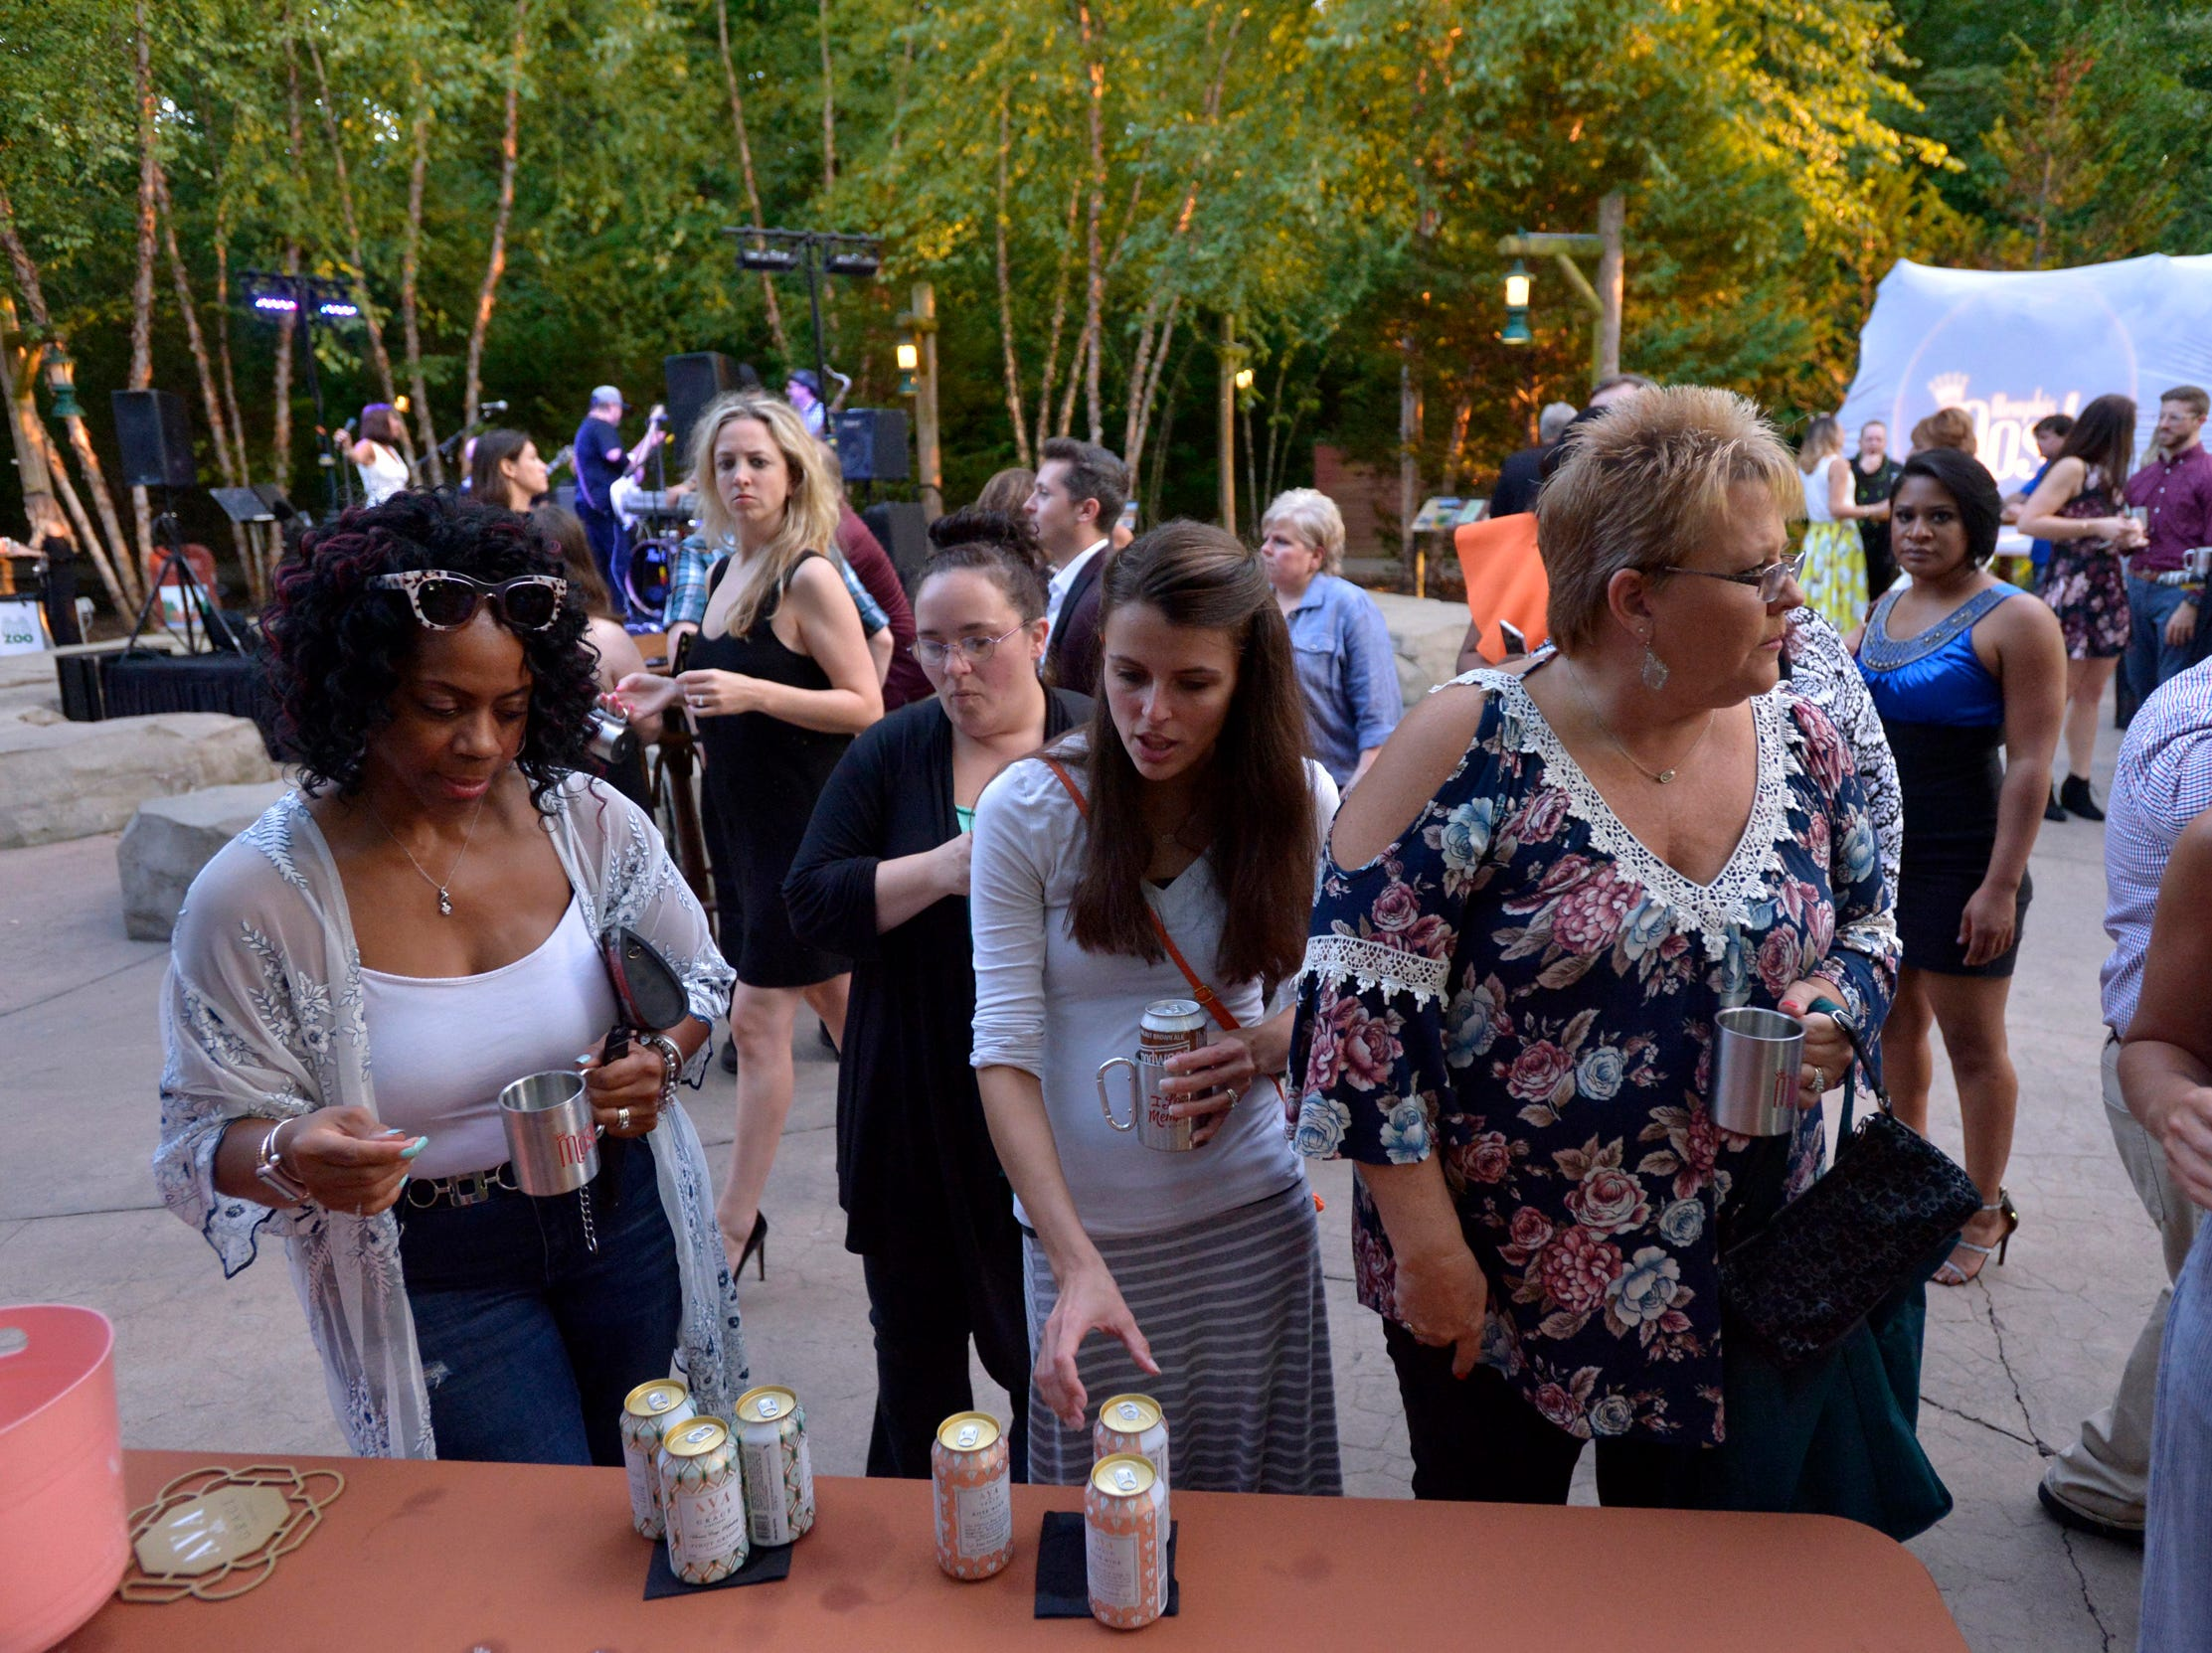 September 13, 2018 - Scenes from the 2018 Memphis Most awards party at Teton Trek in the Memphis Zoo. (Brandon Dill for The Commercial Appeal)